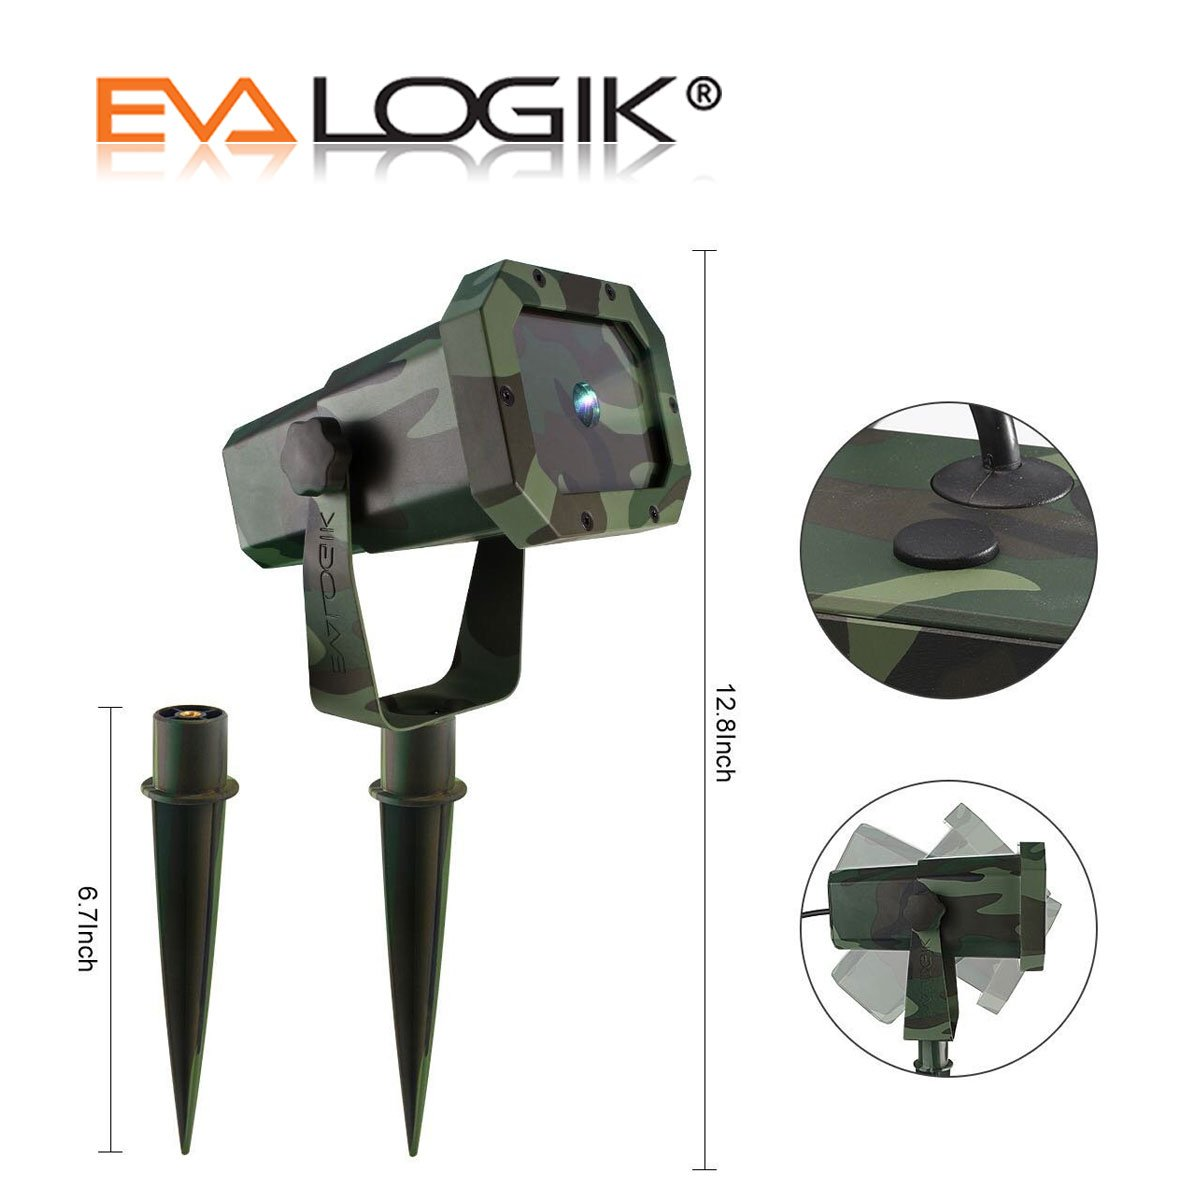 EVA Logik Outdoor Waterproof Laser Projector Light, Moving RGB 20 Patterns, with RF Remote Control & Timer, Perfect for Lawn, Party, Garden Decoration by Eva logik (Image #8)